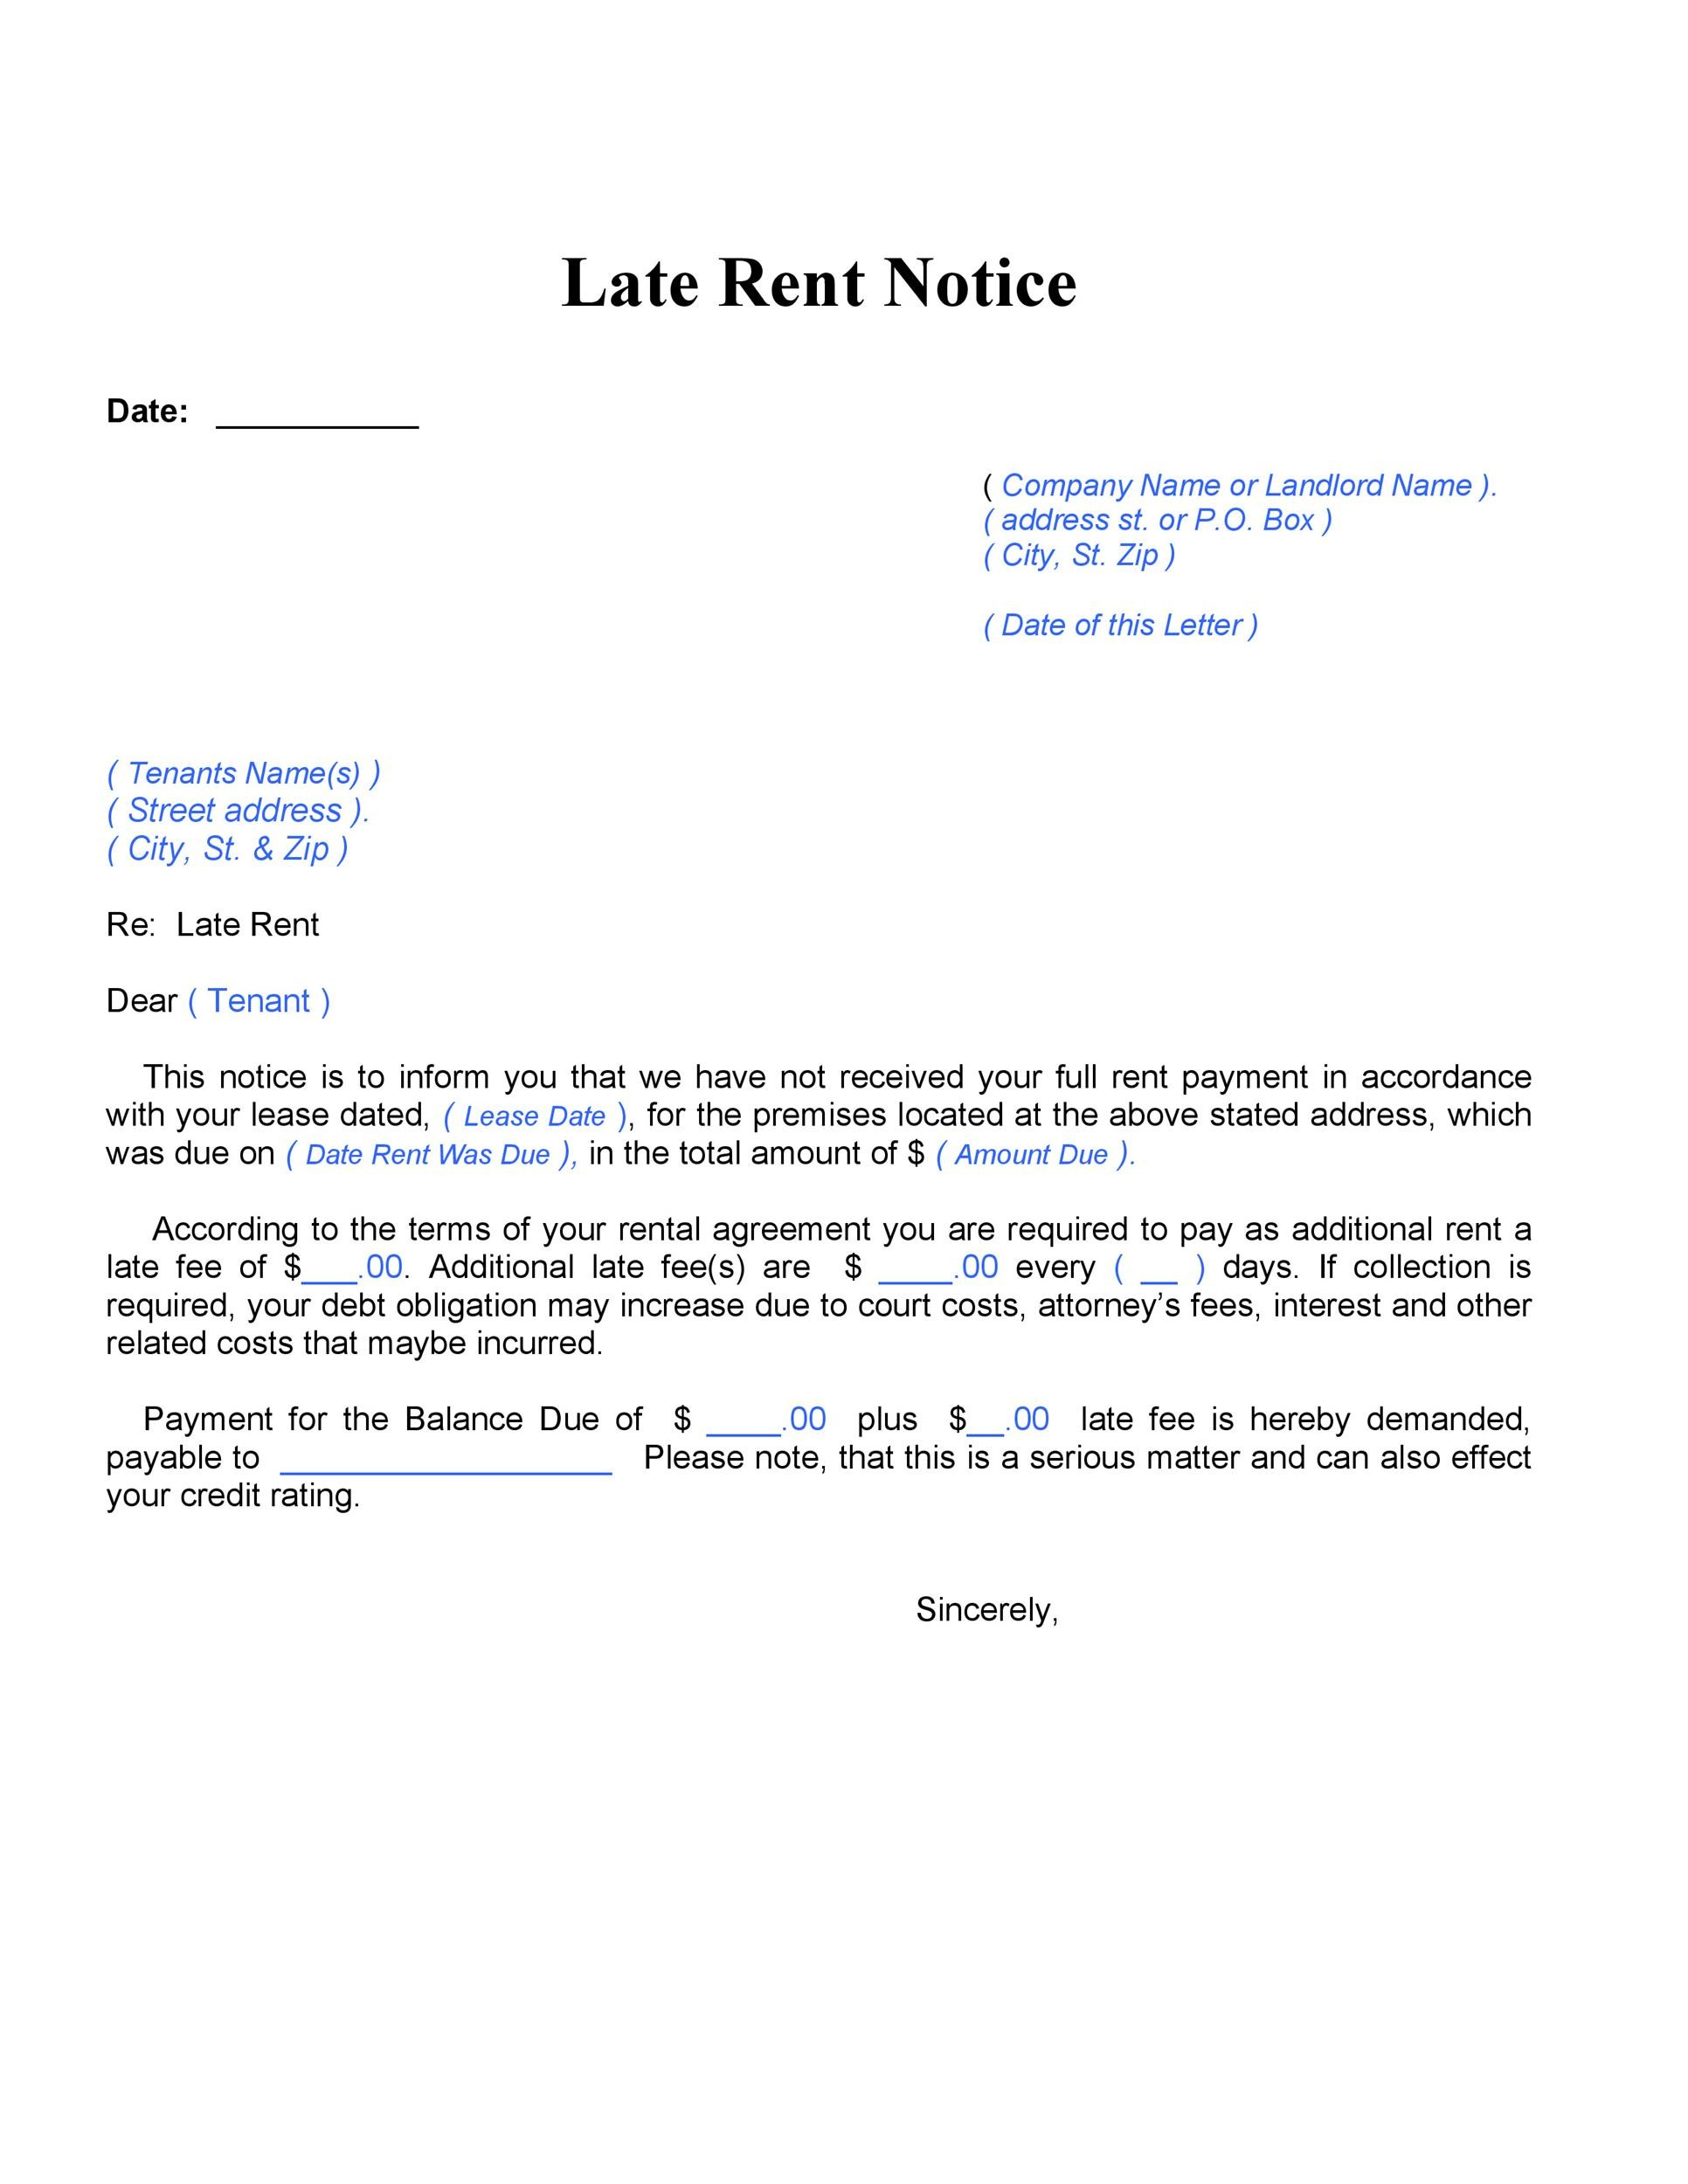 Demand For Rent Payment Letter Sample from templatelab.com